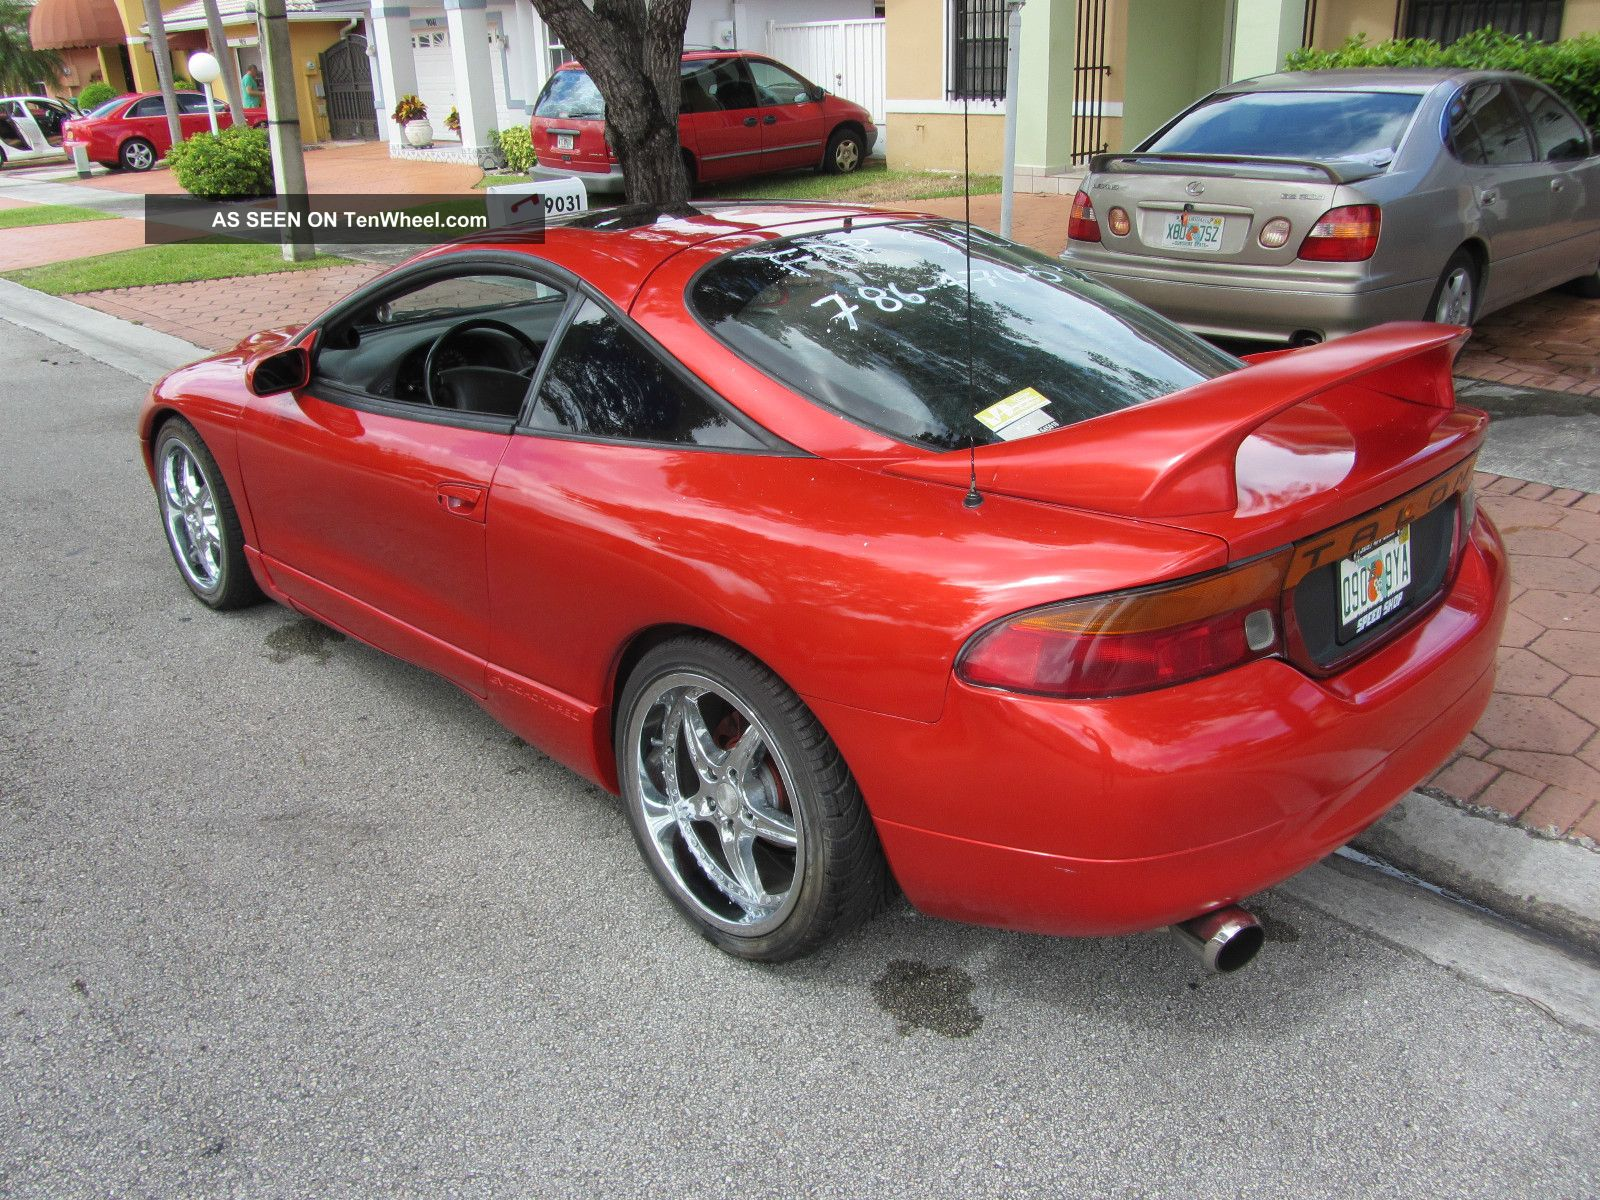 Eagle talon photo - 7